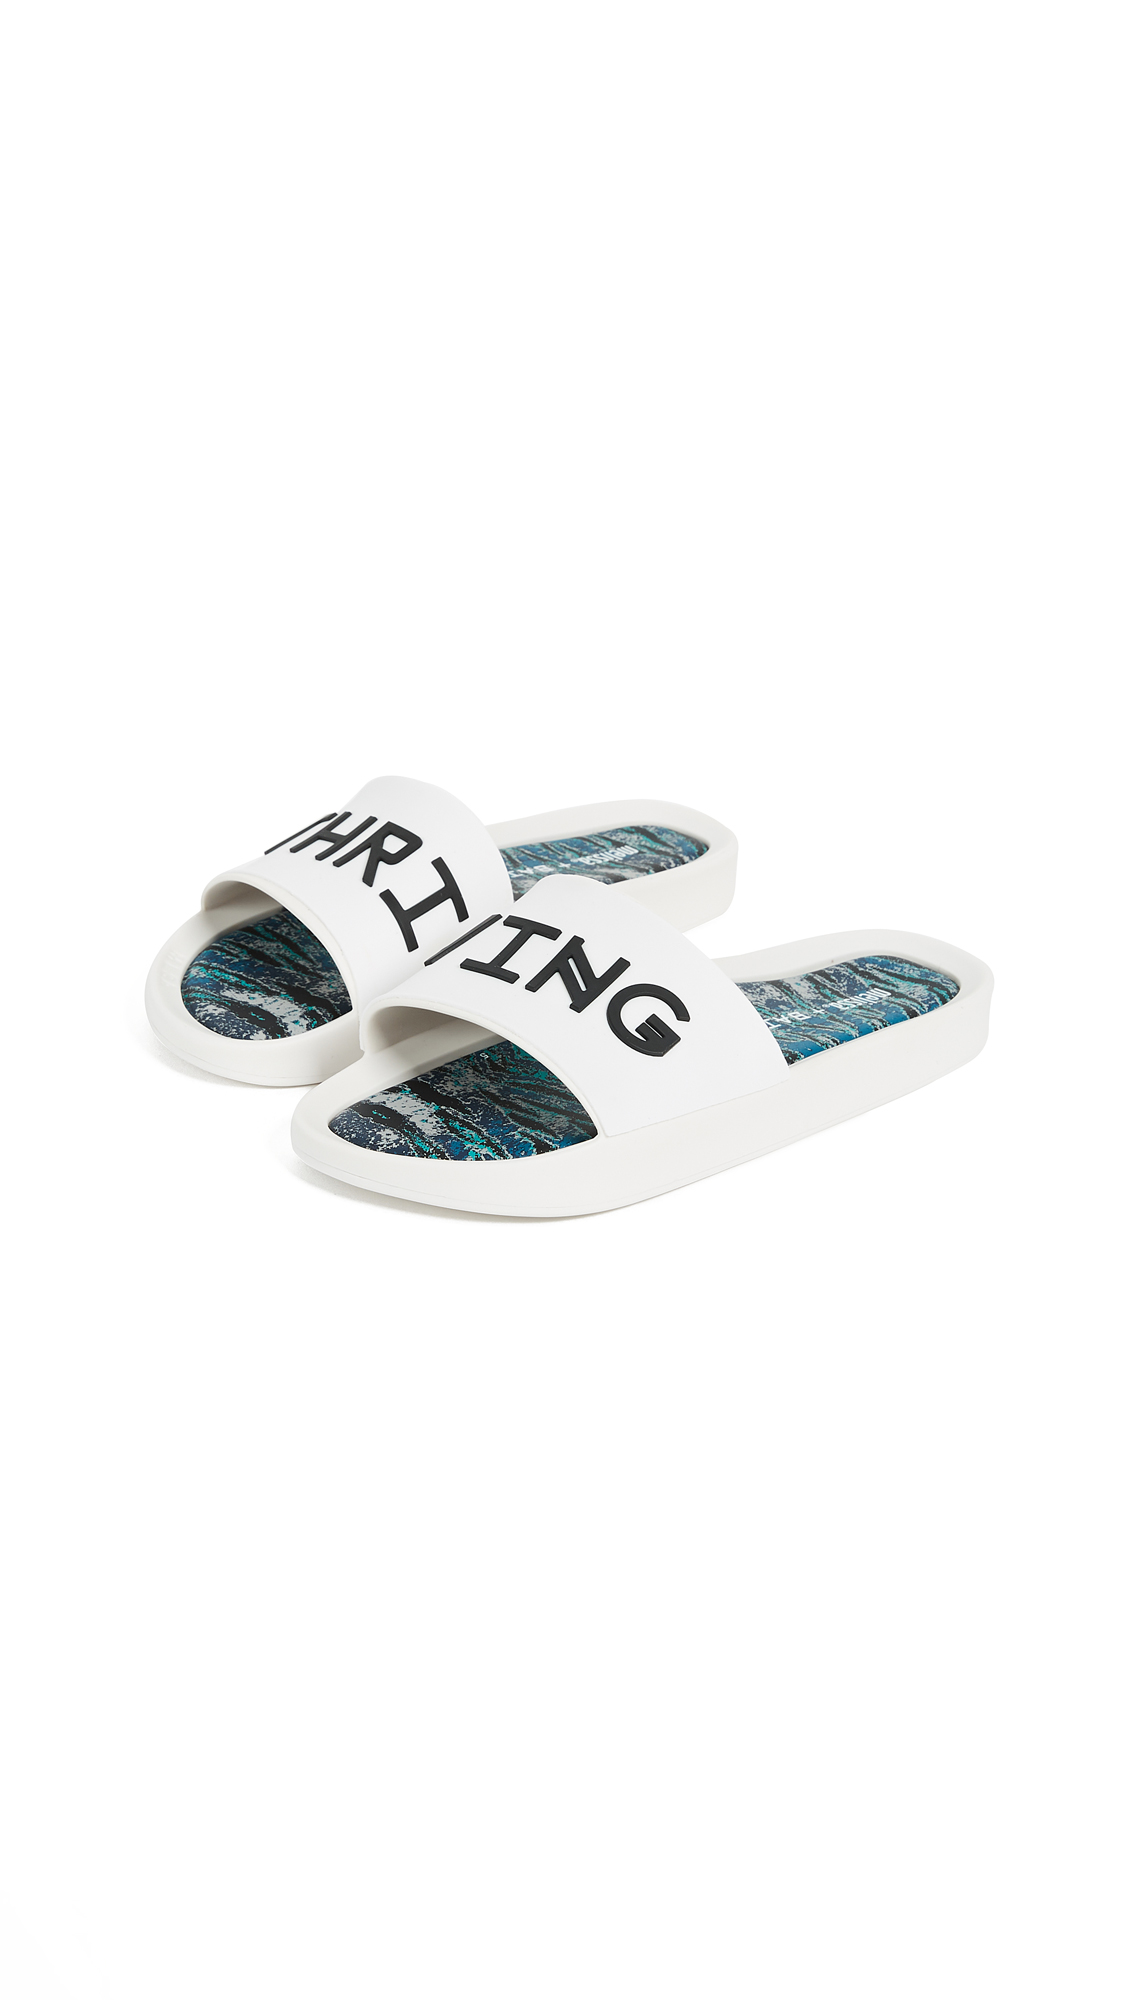 Melissa x Baja East Beach Slides - White